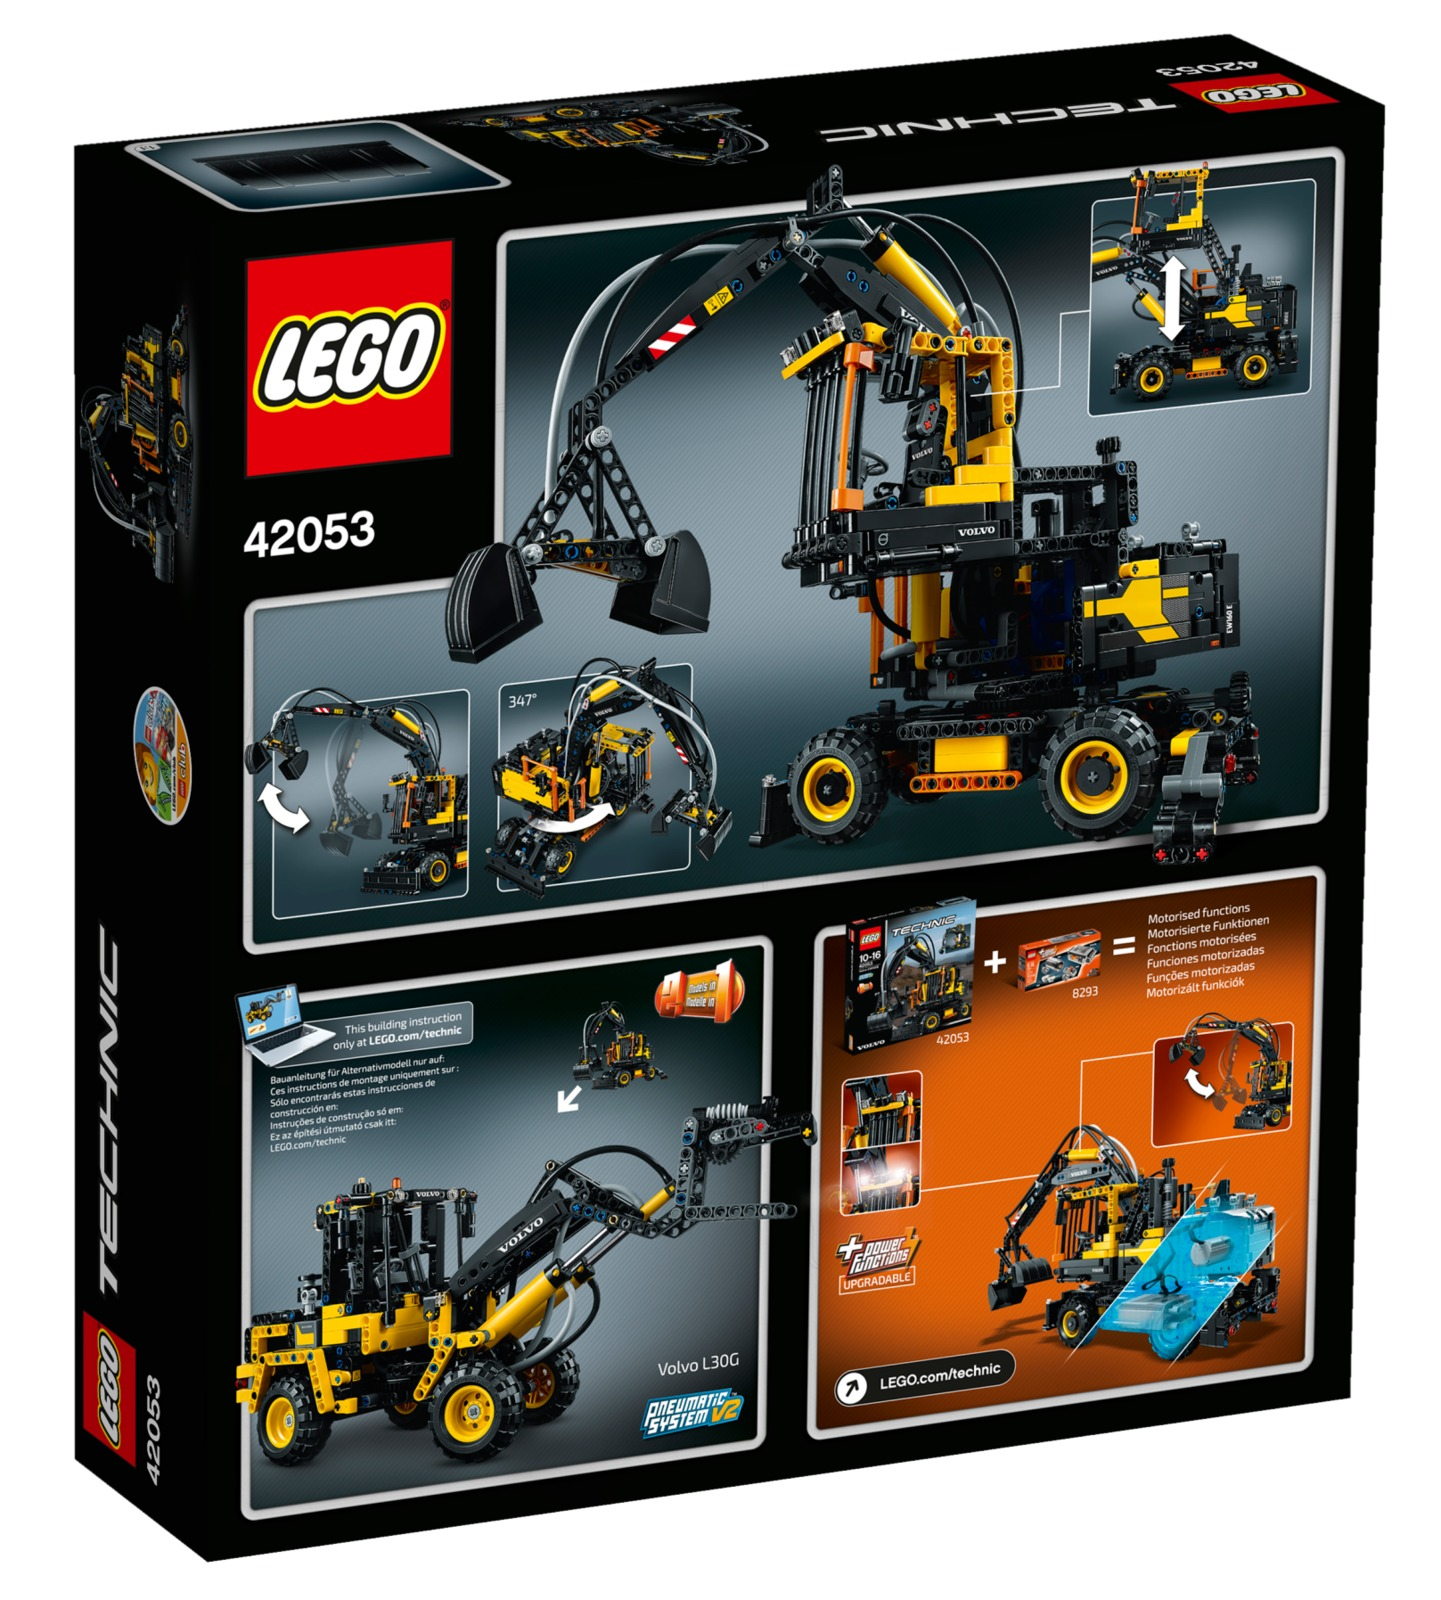 lego technic volvo ew160e 42053 toy at mighty ape nz. Black Bedroom Furniture Sets. Home Design Ideas